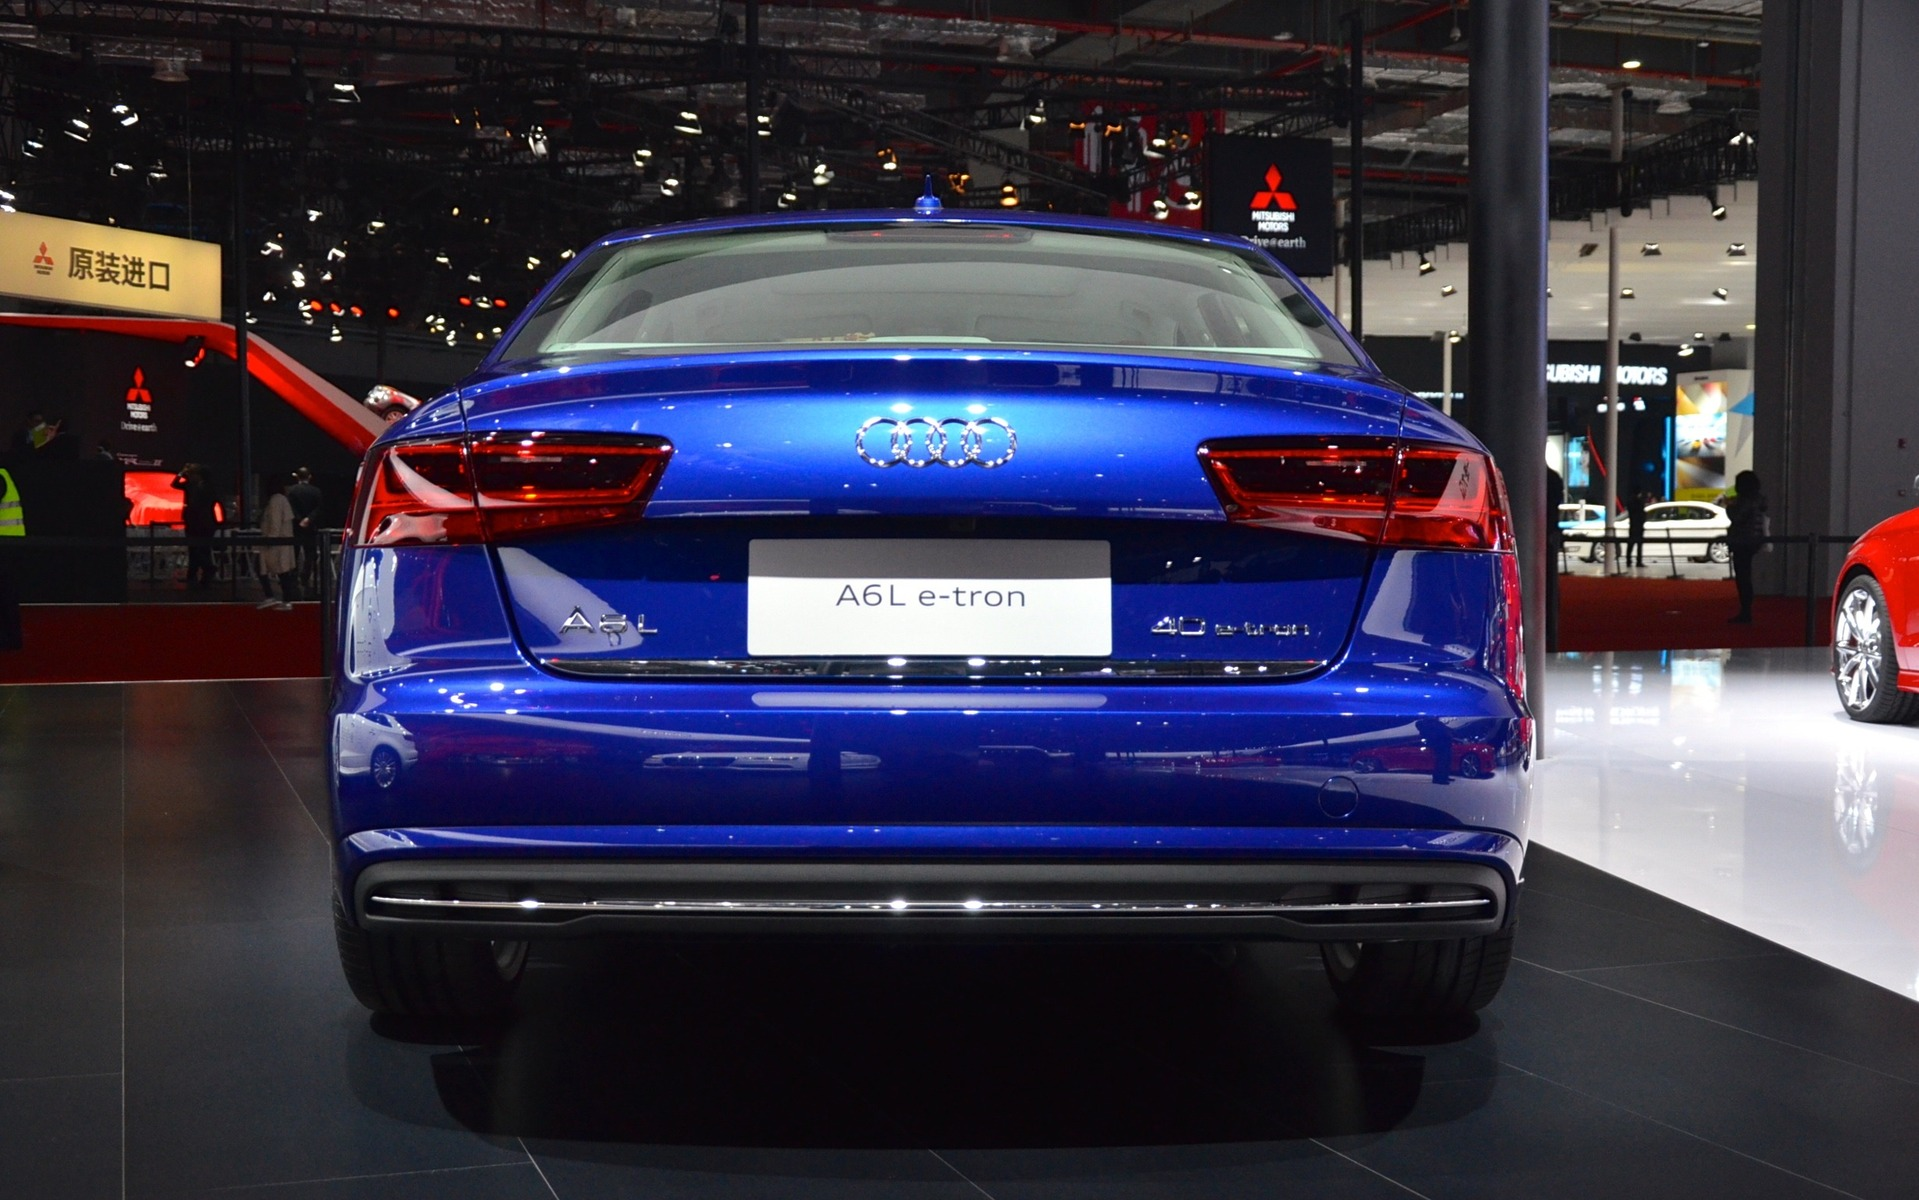 The Audi A6 L E Tron And Q7 E Tron Quattro Unveiled In